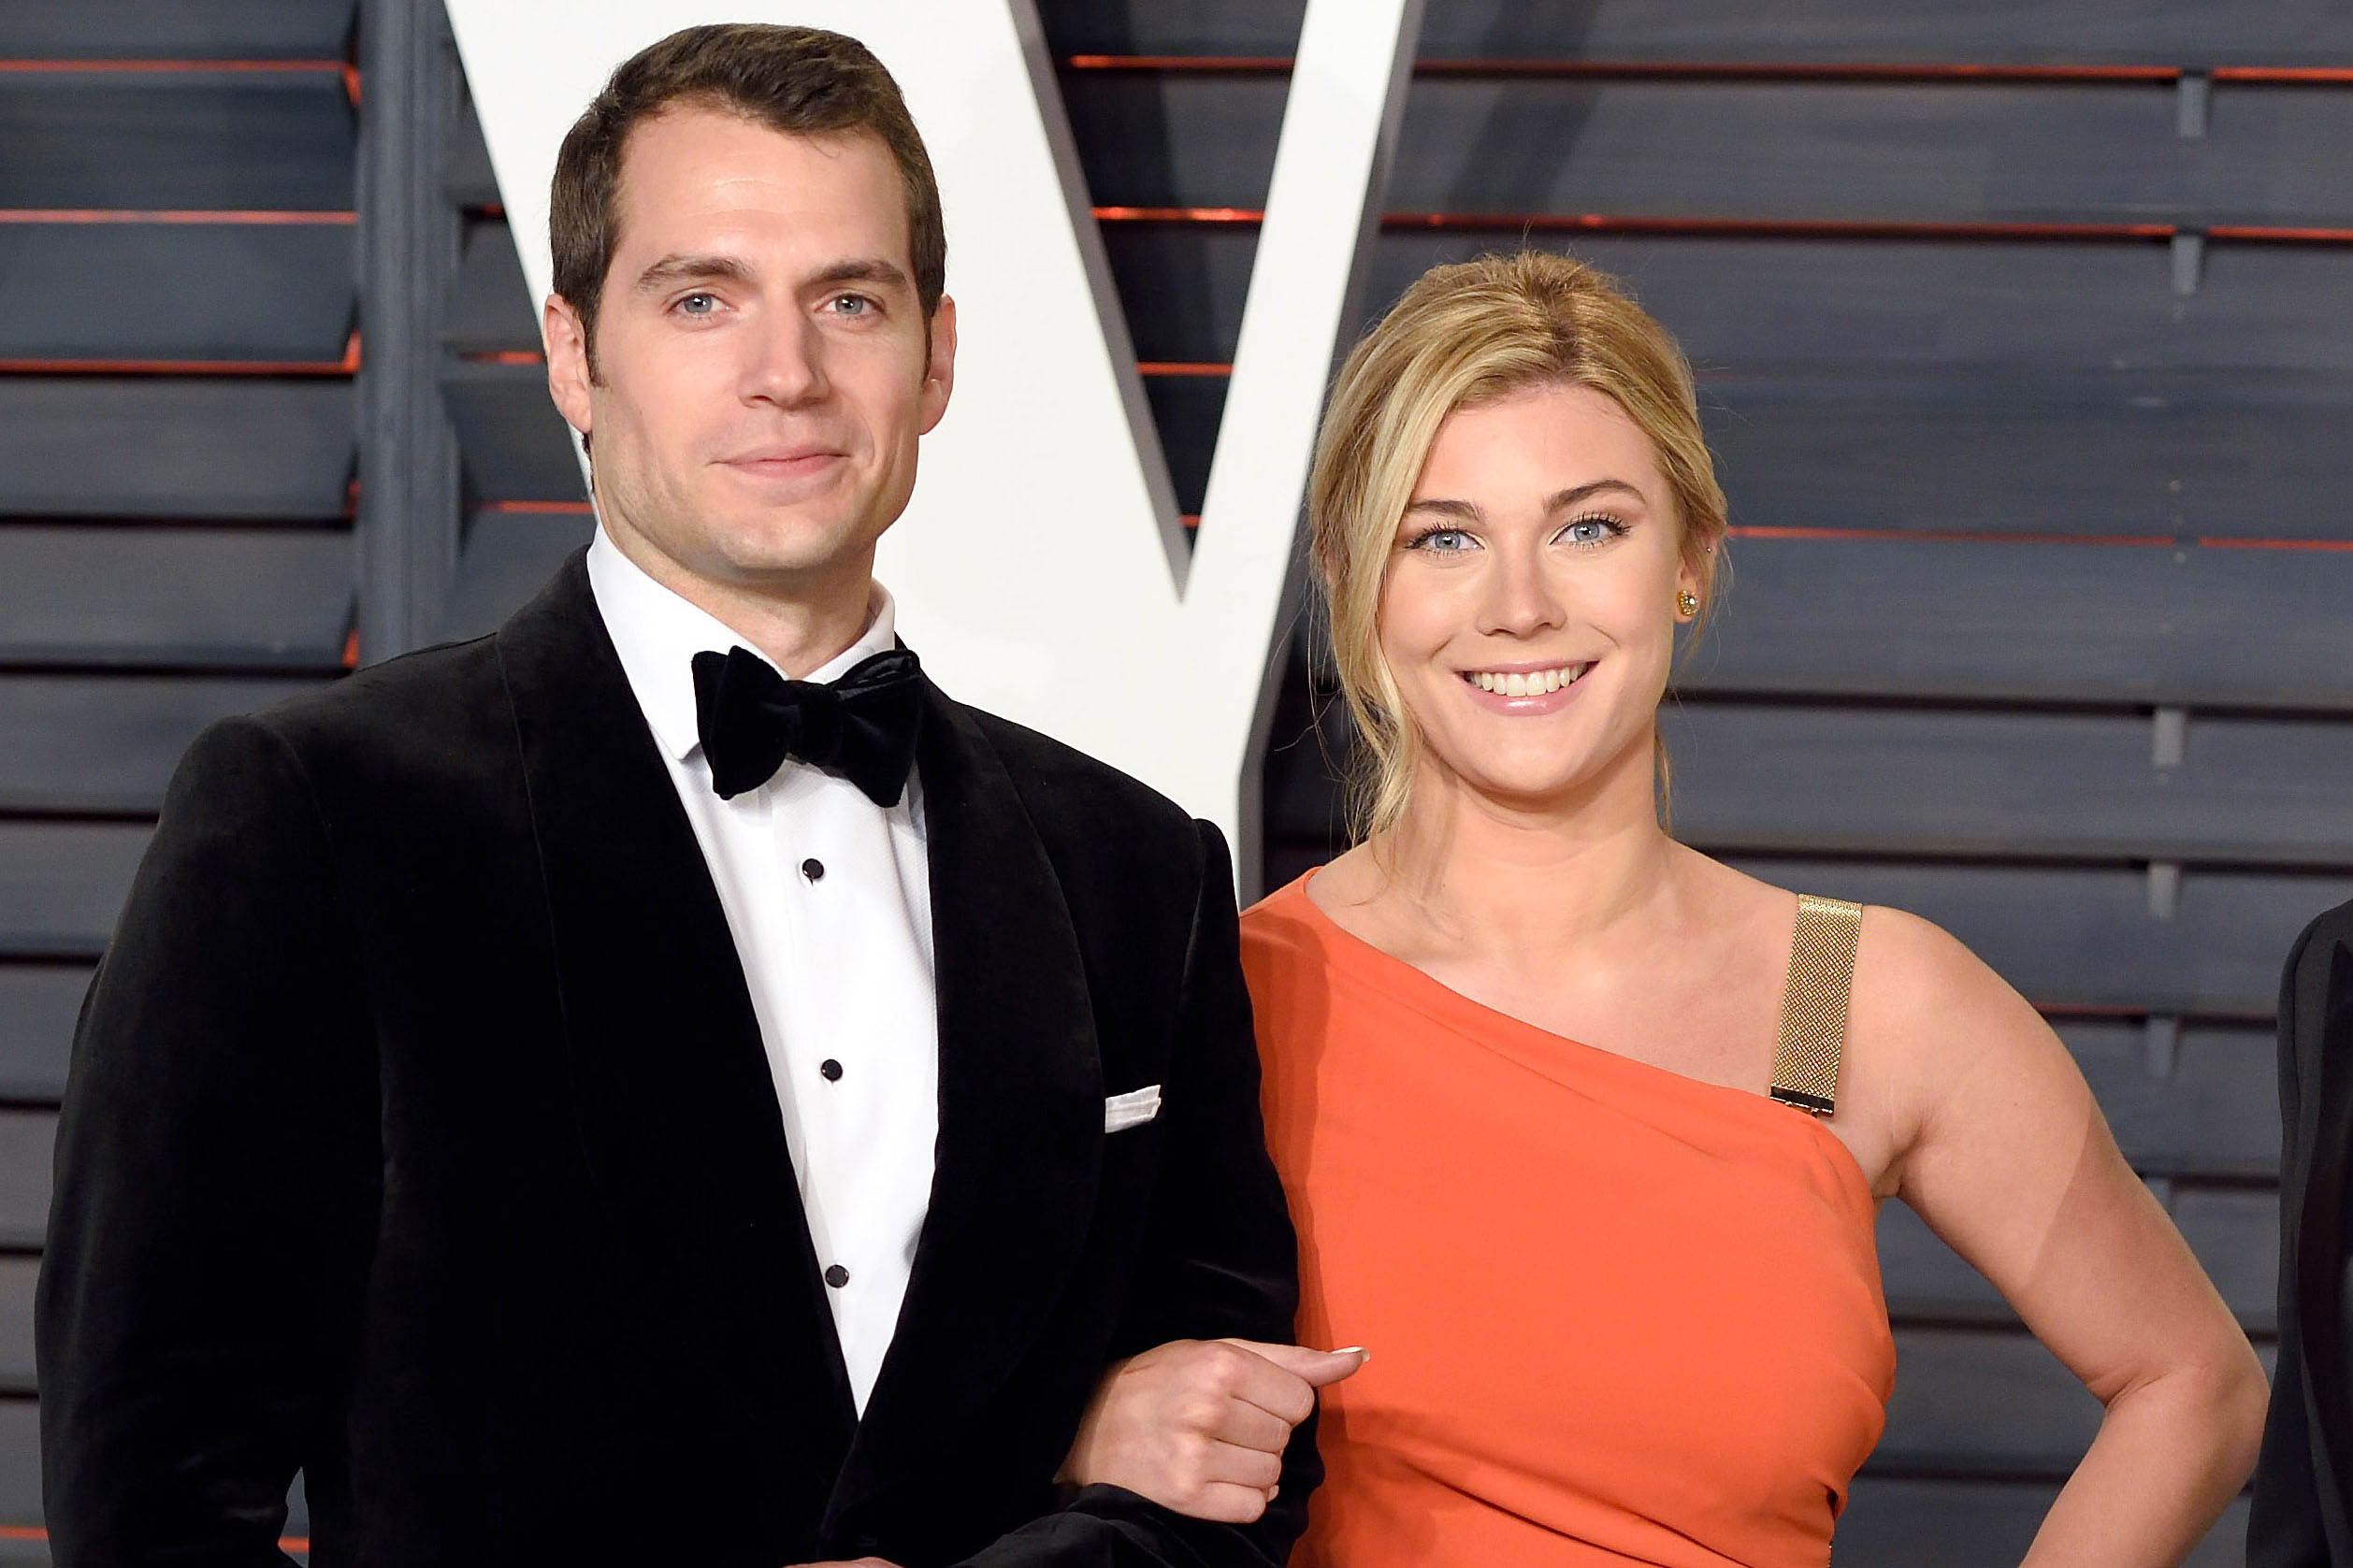 Henry Cavill Splits From 19 Year Old Girlfriend Page Six